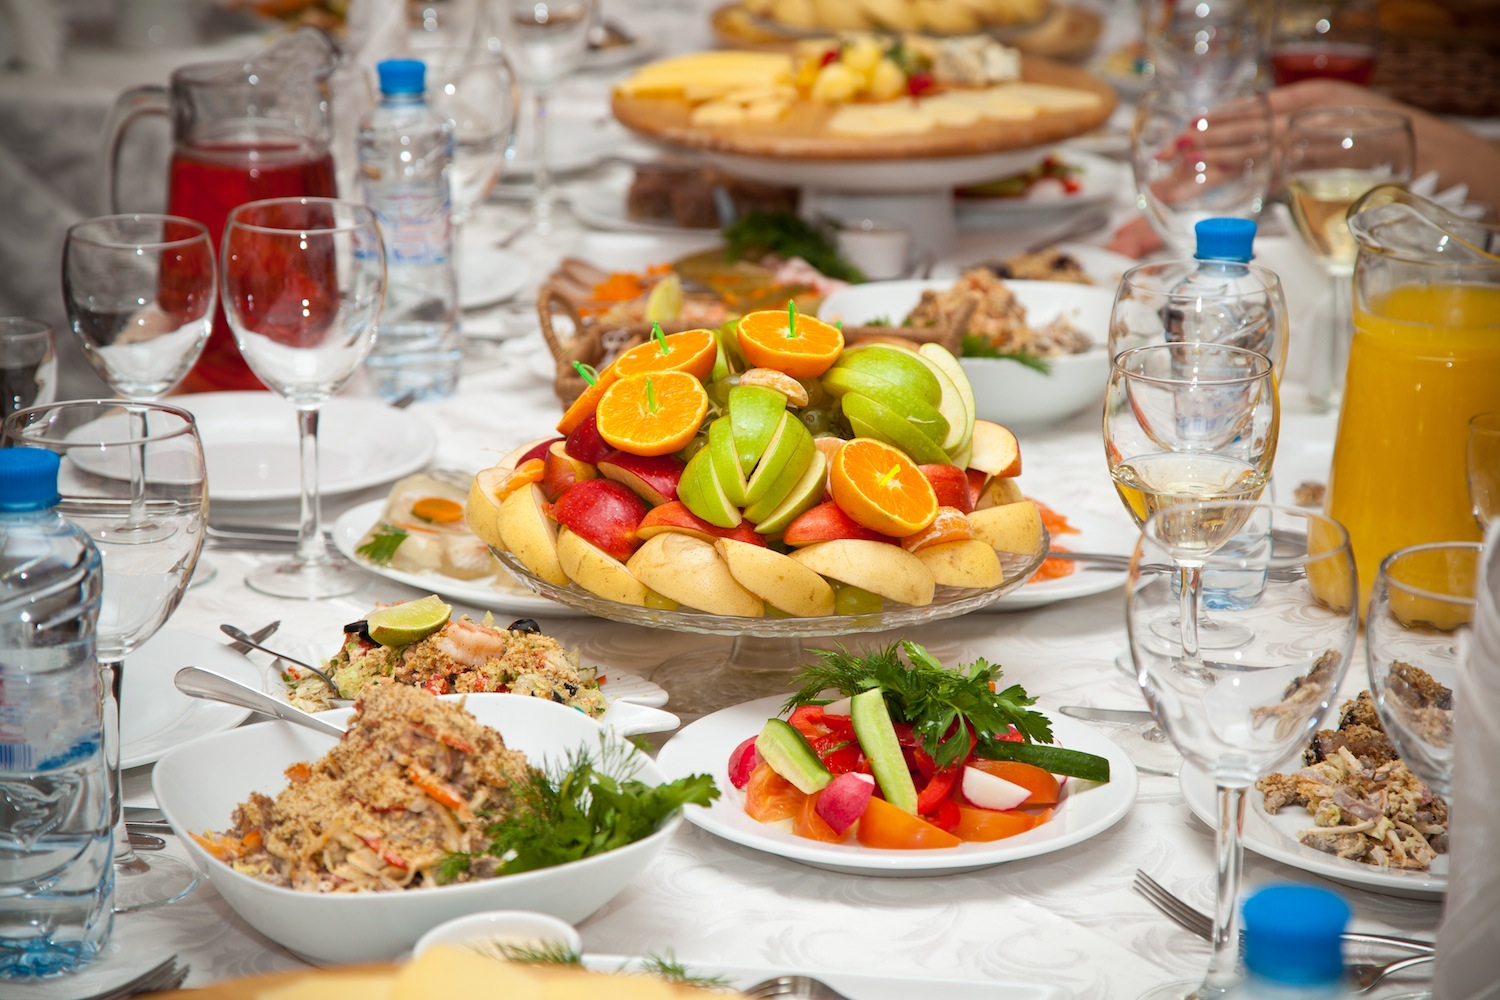 Healthy Food & Drink Tips For Your Next Event | Absolute ...